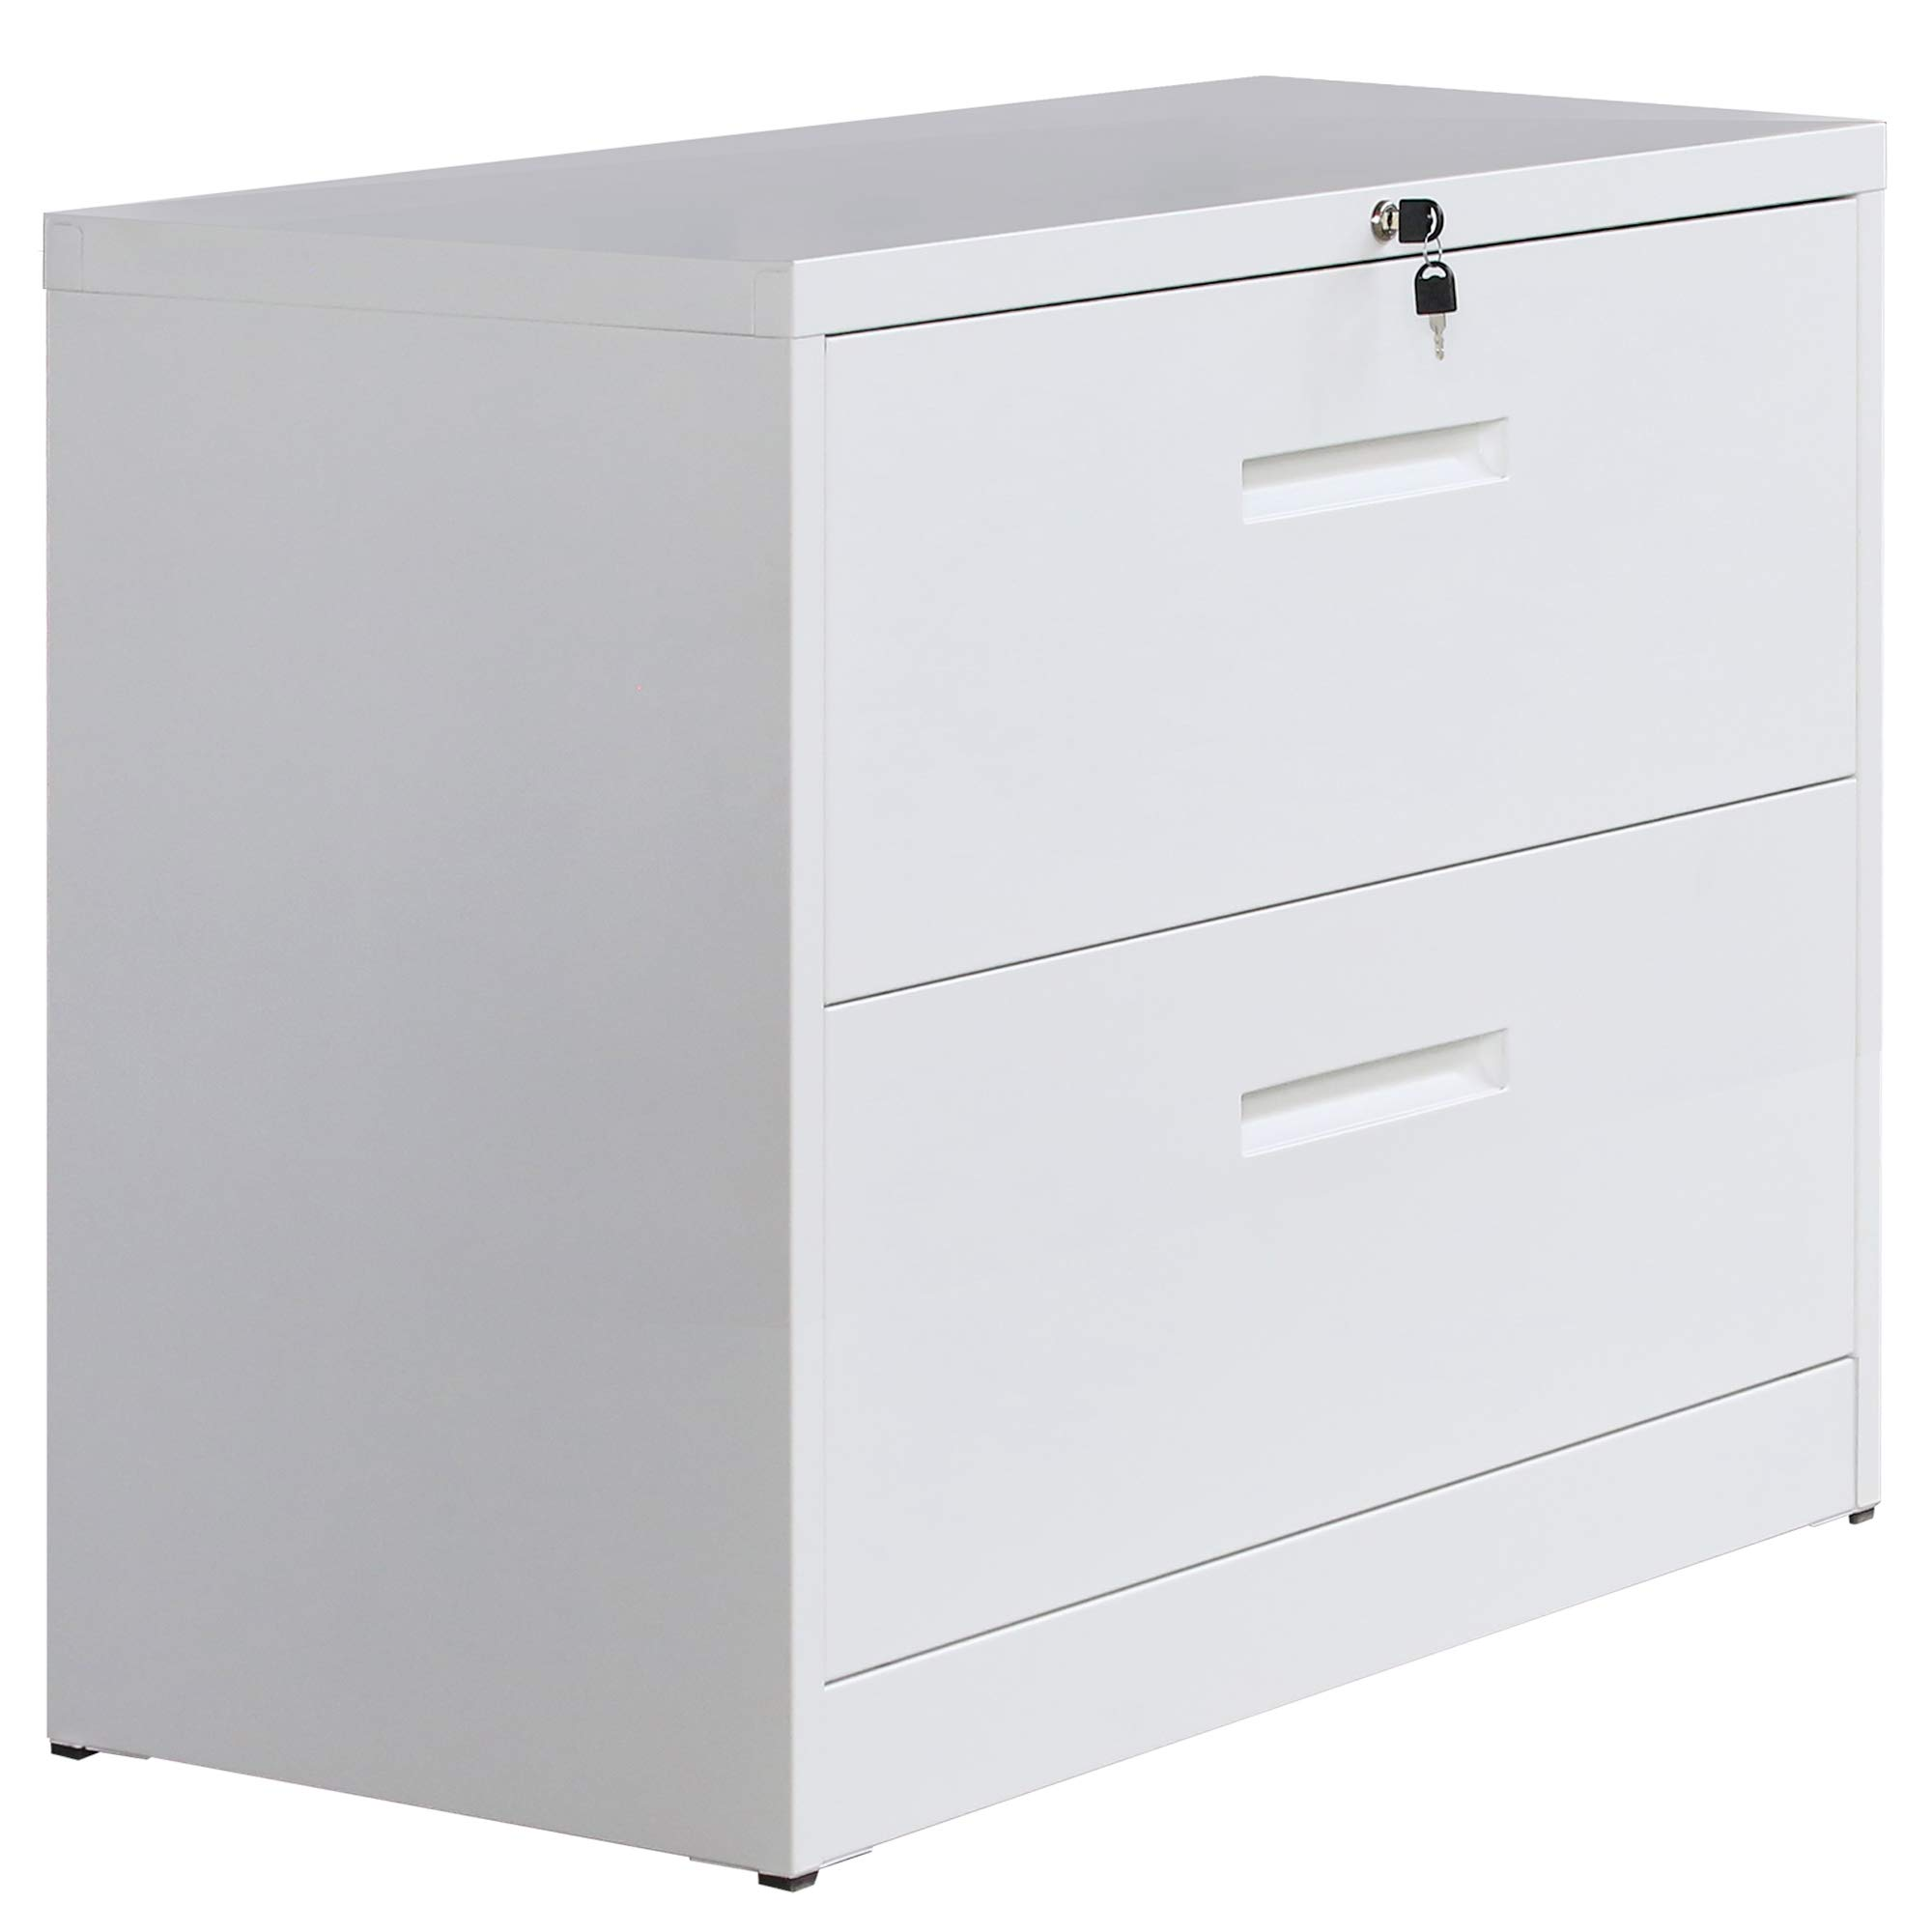 2 Drawers Lateral File Cabinet with Lock, Lockable Metal Filing Cabinet for Office and Home, White by MERITLINE